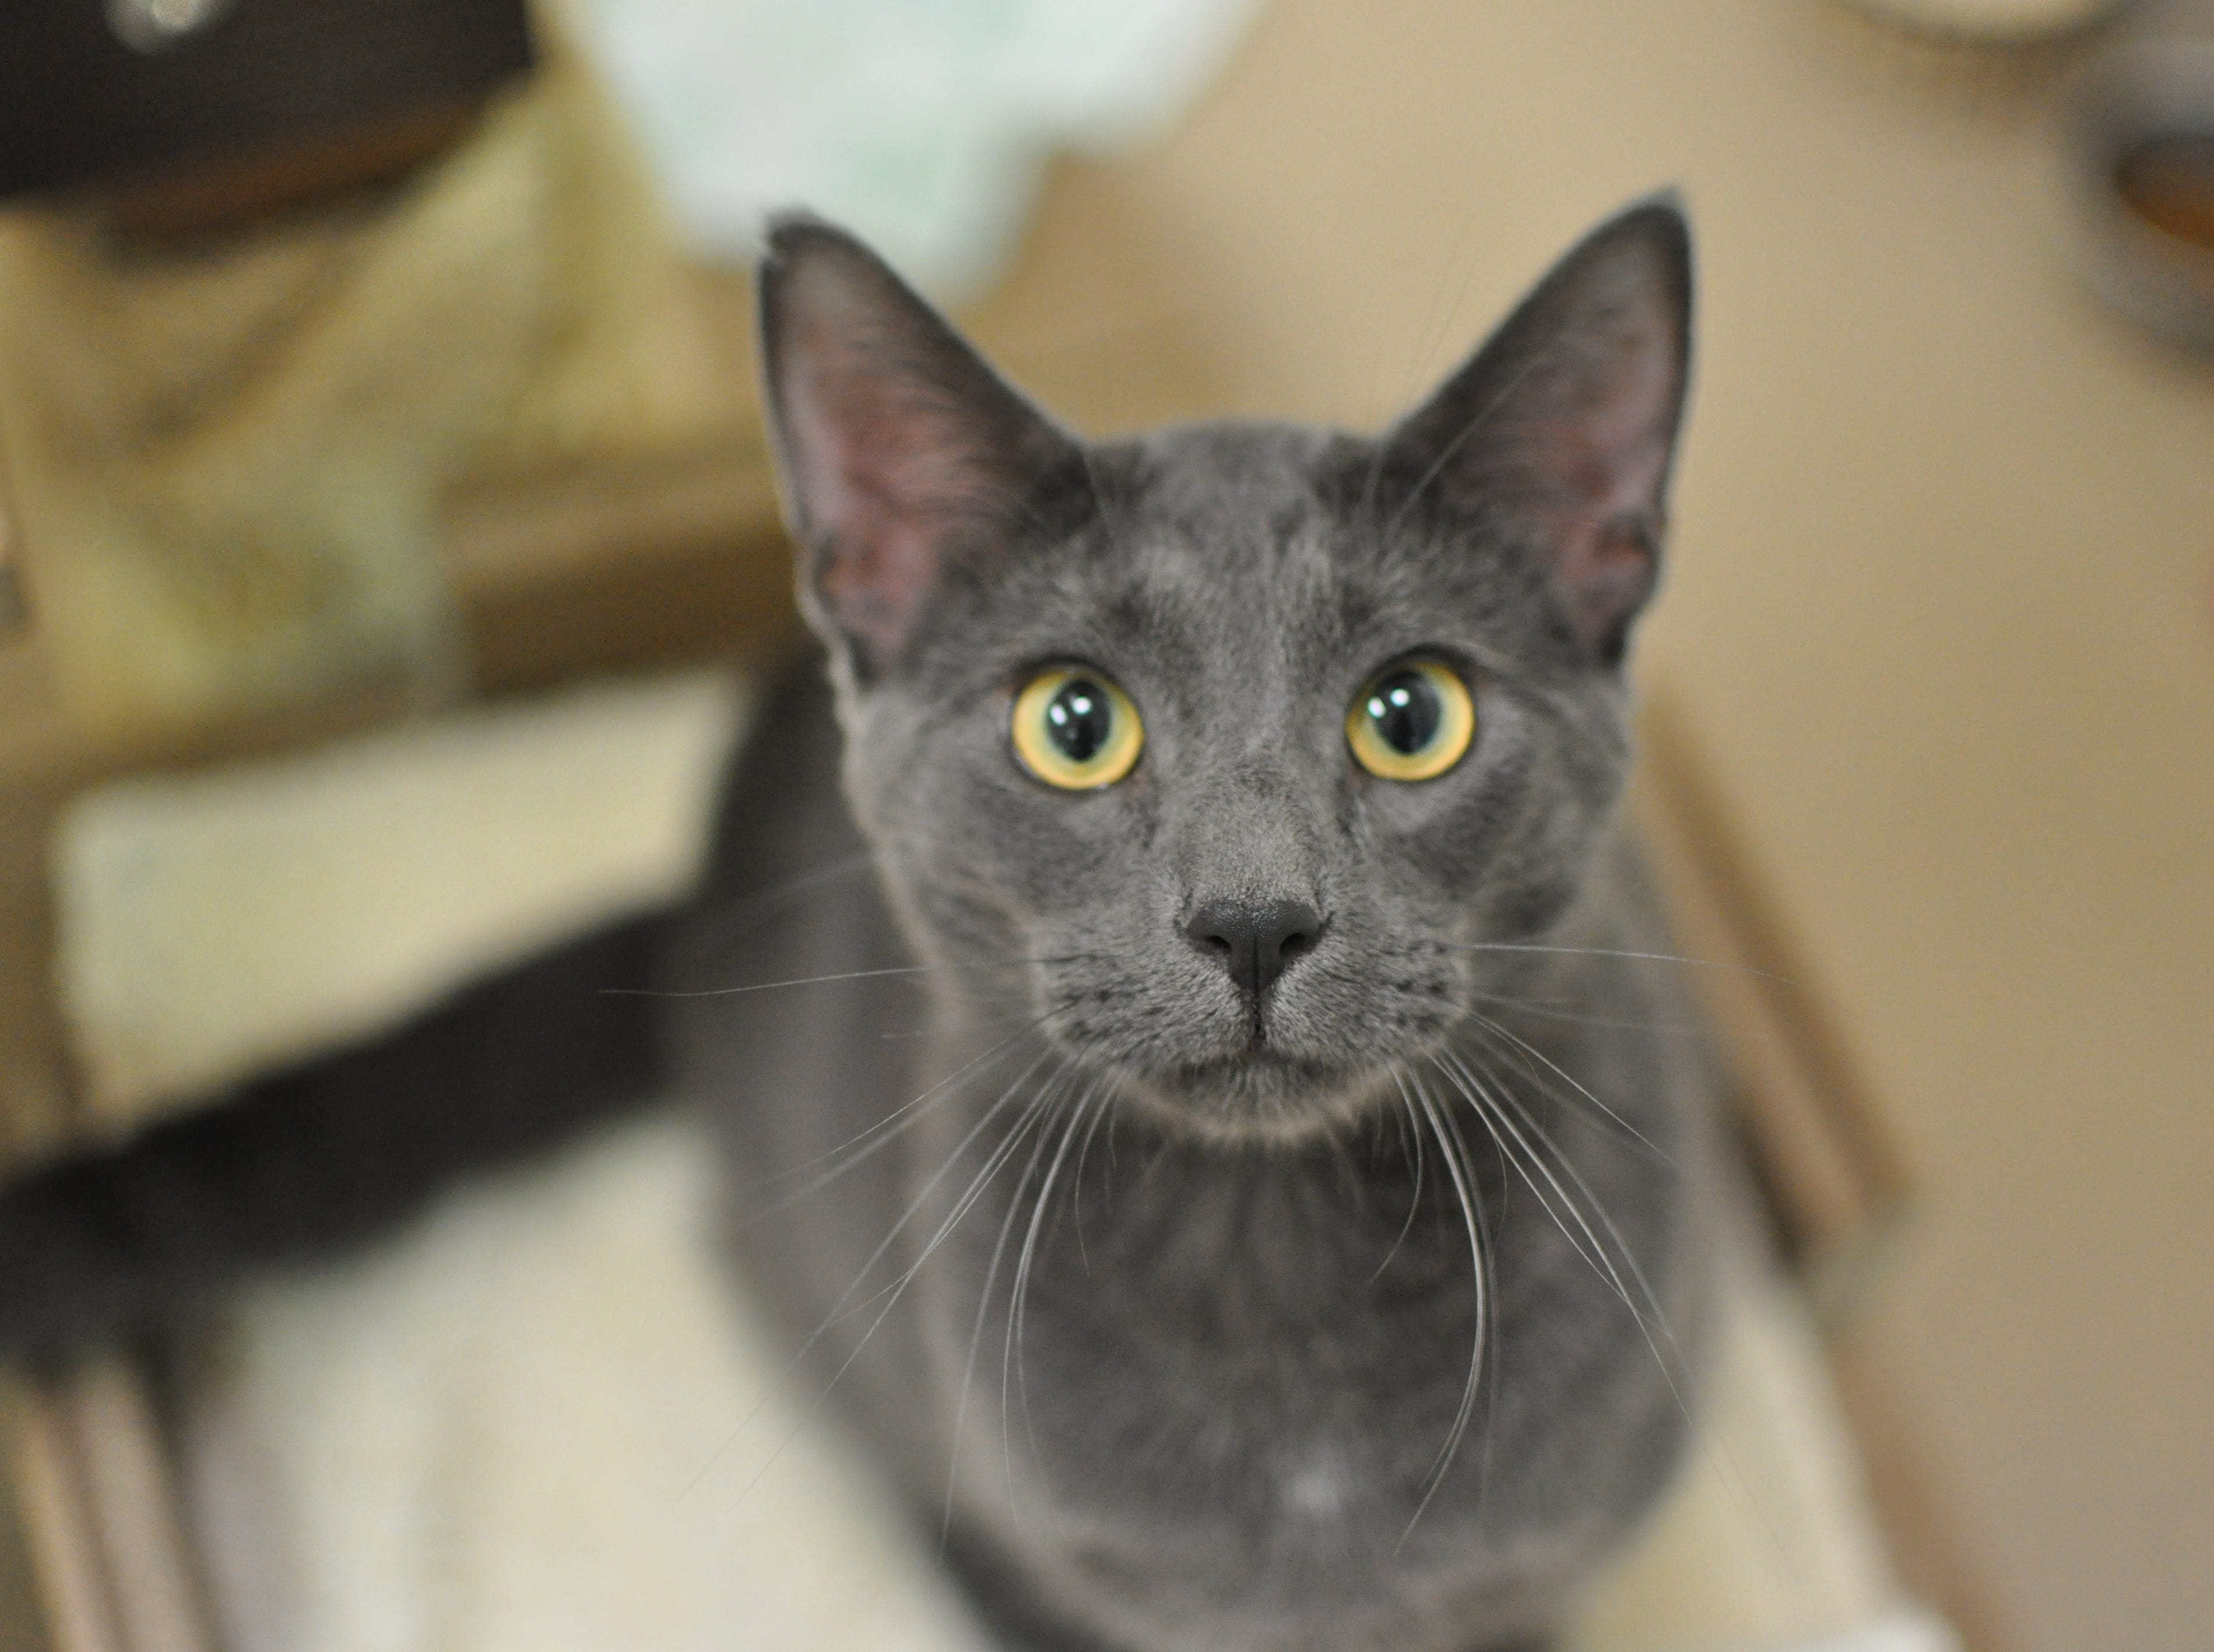 Turkey, 1, loves playing with his friends, Ritty and Domino. He is neutered.